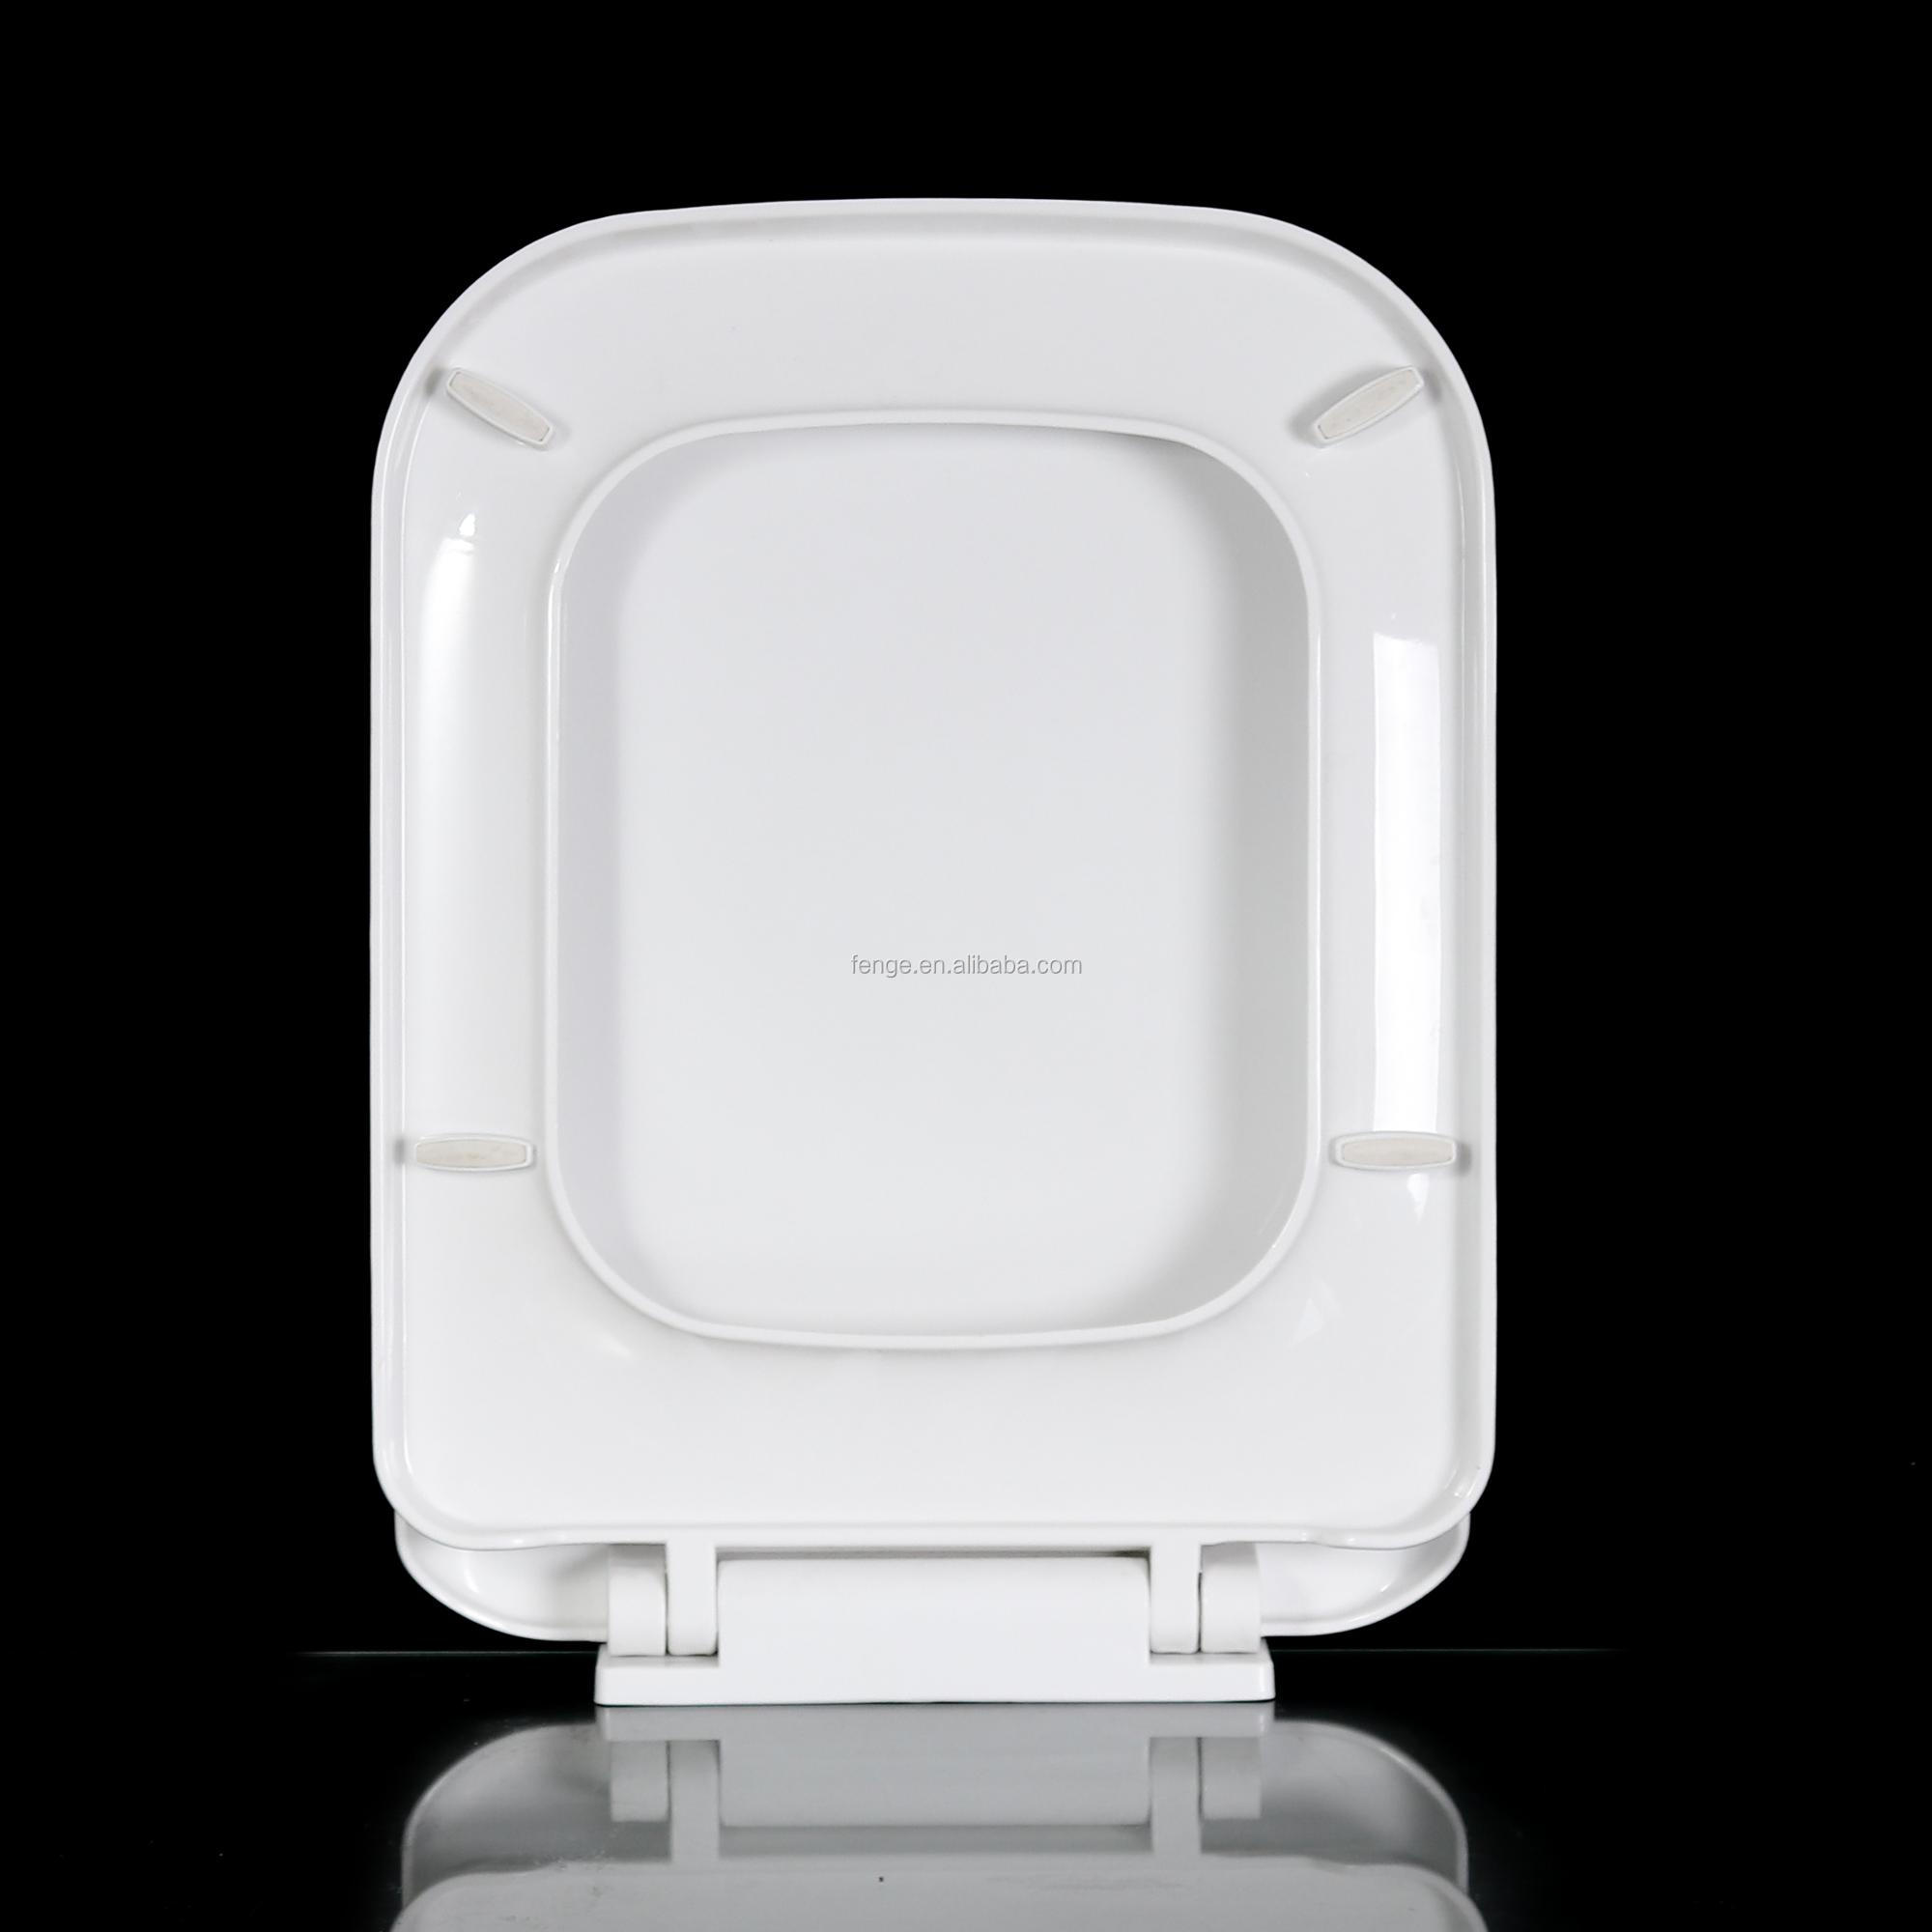 Top Selling Rectangular Square Design Anglo Indian Toilet Seat With Cover Soft Close Hinge Buy Rectangular Toilet Seat Square Design Toilet Seat Anglo Indian Toilet Seats Product On Alibaba Com